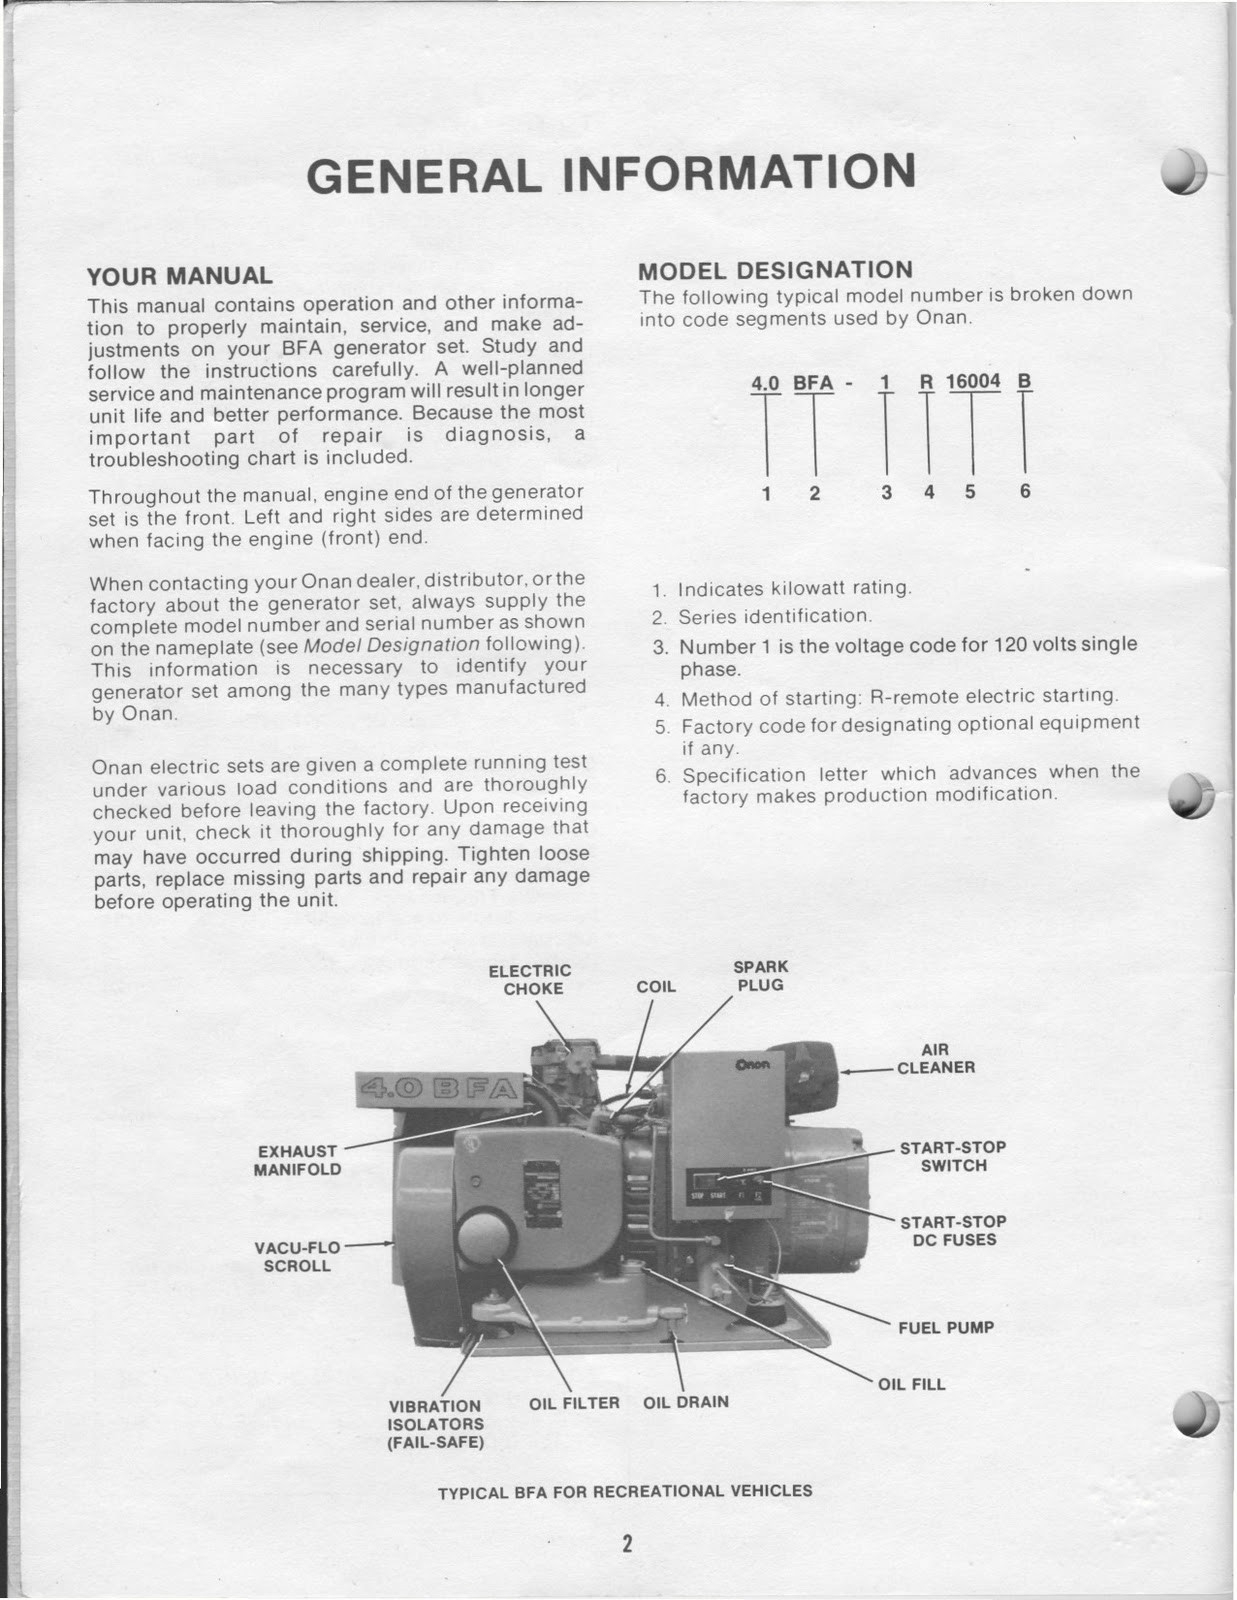 Wiring Diagram Onan 4.0 Generator Inspirational 1983 Fleetwood Pace - Onan 4.0 Rv Genset Wiring Diagram